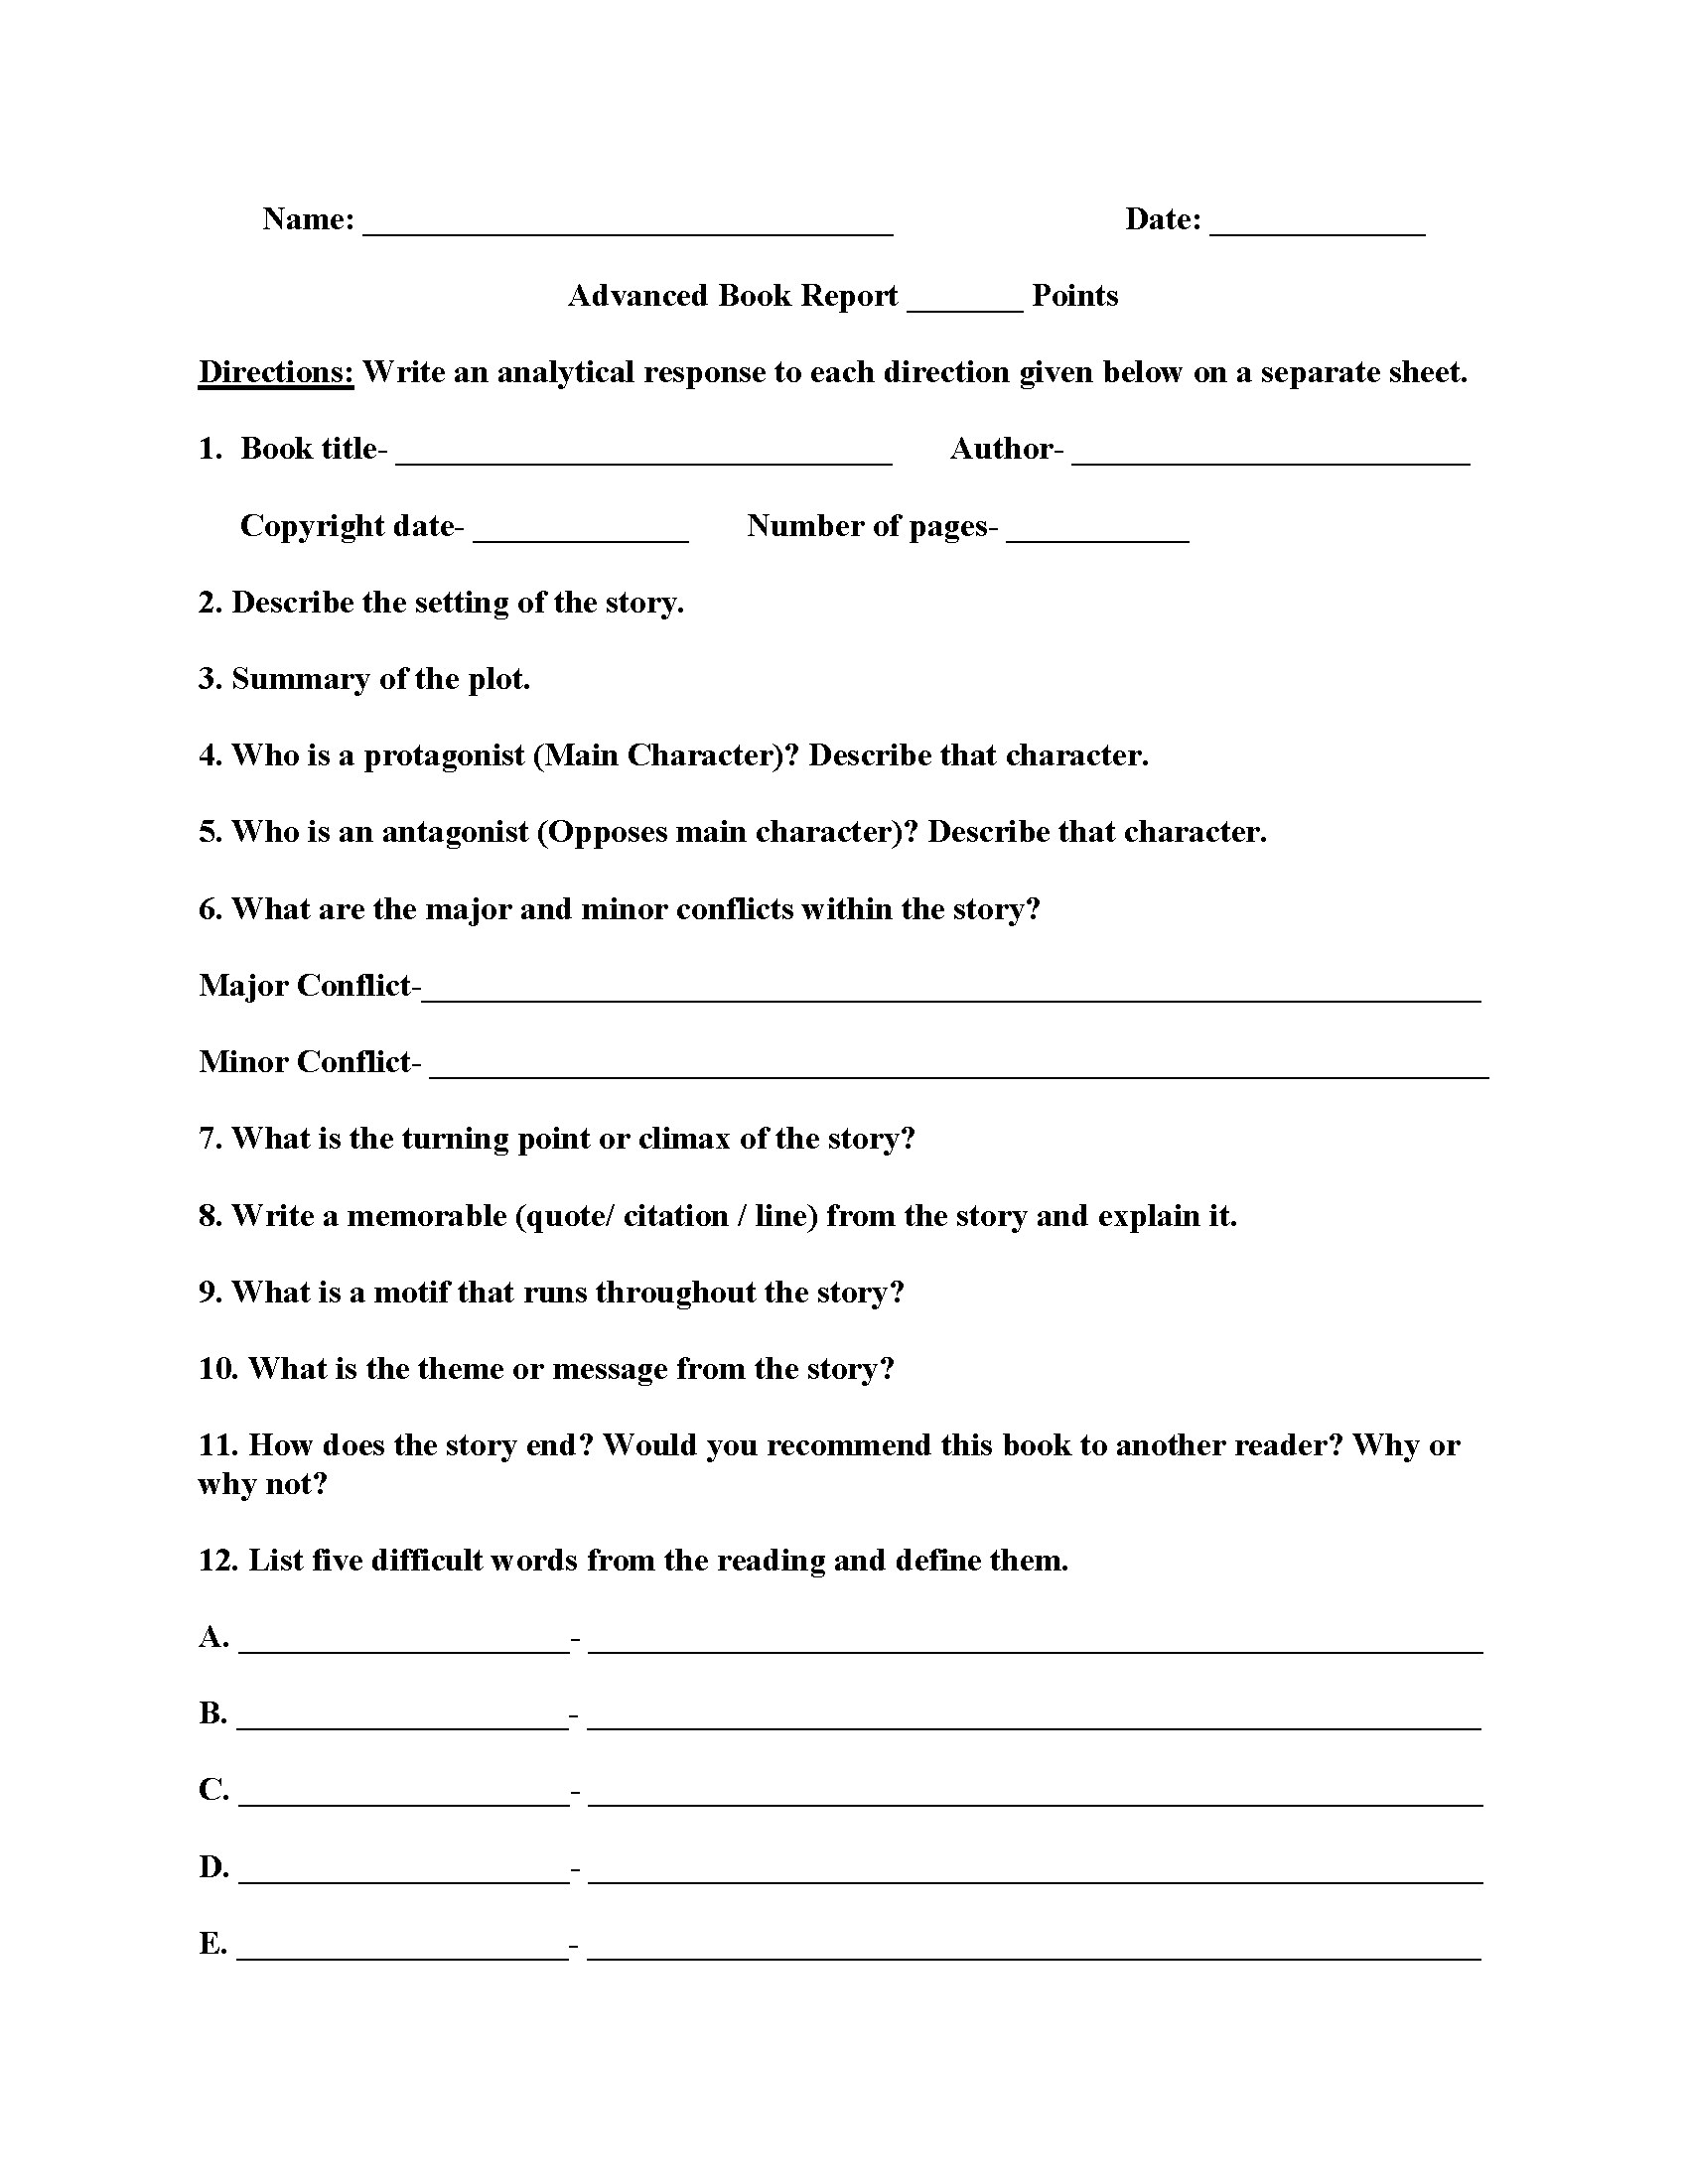 Advanced Book Report Worksheets | English | Book Report Templates | Printable Book Report Worksheets